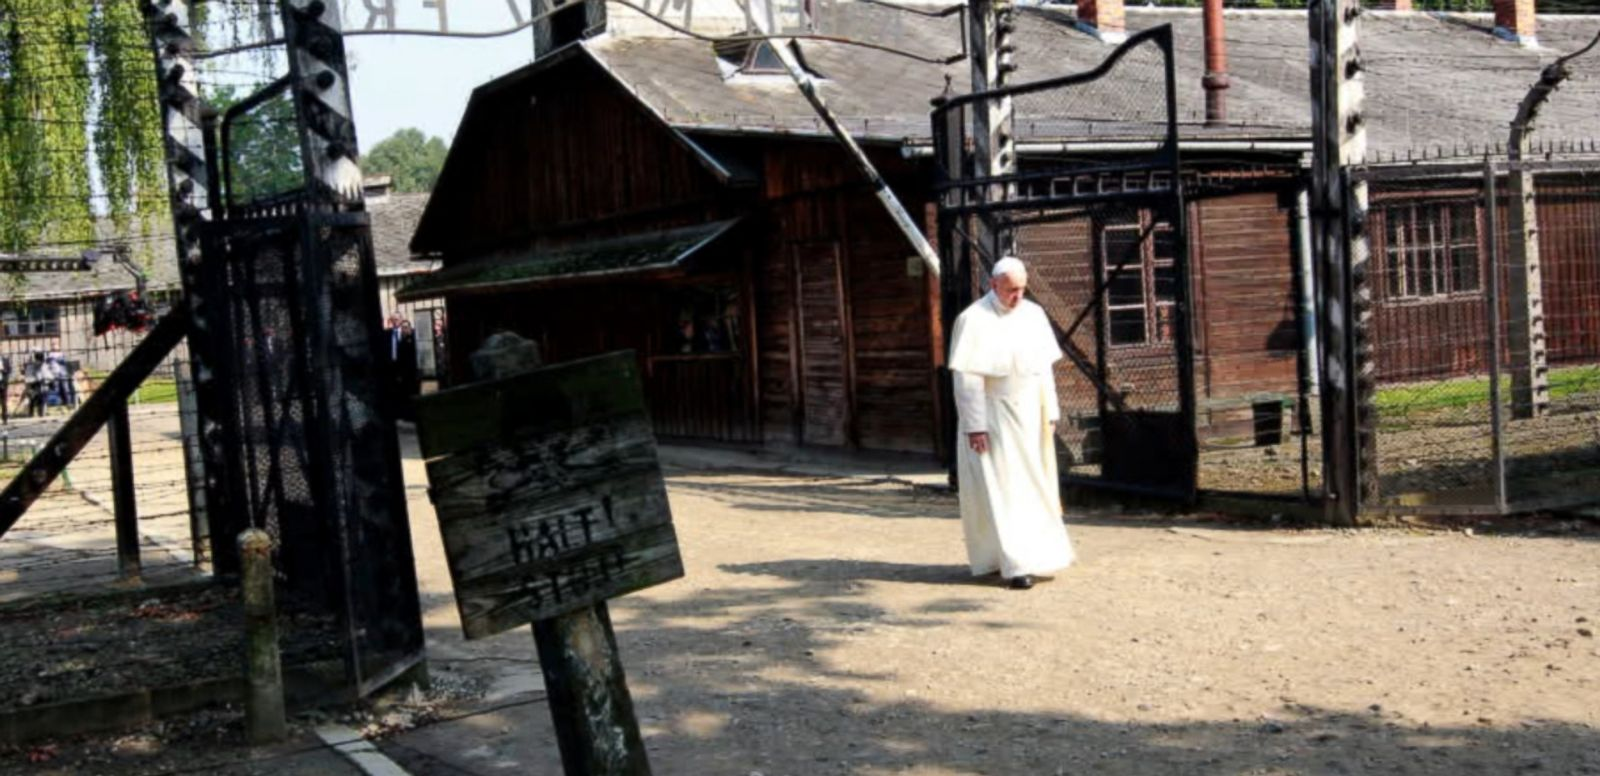 VIDEO: Pope Francis paid a somber visit to the site of the former Nazi Germnan death camp of Auschwitz in southern Poland on Friday.